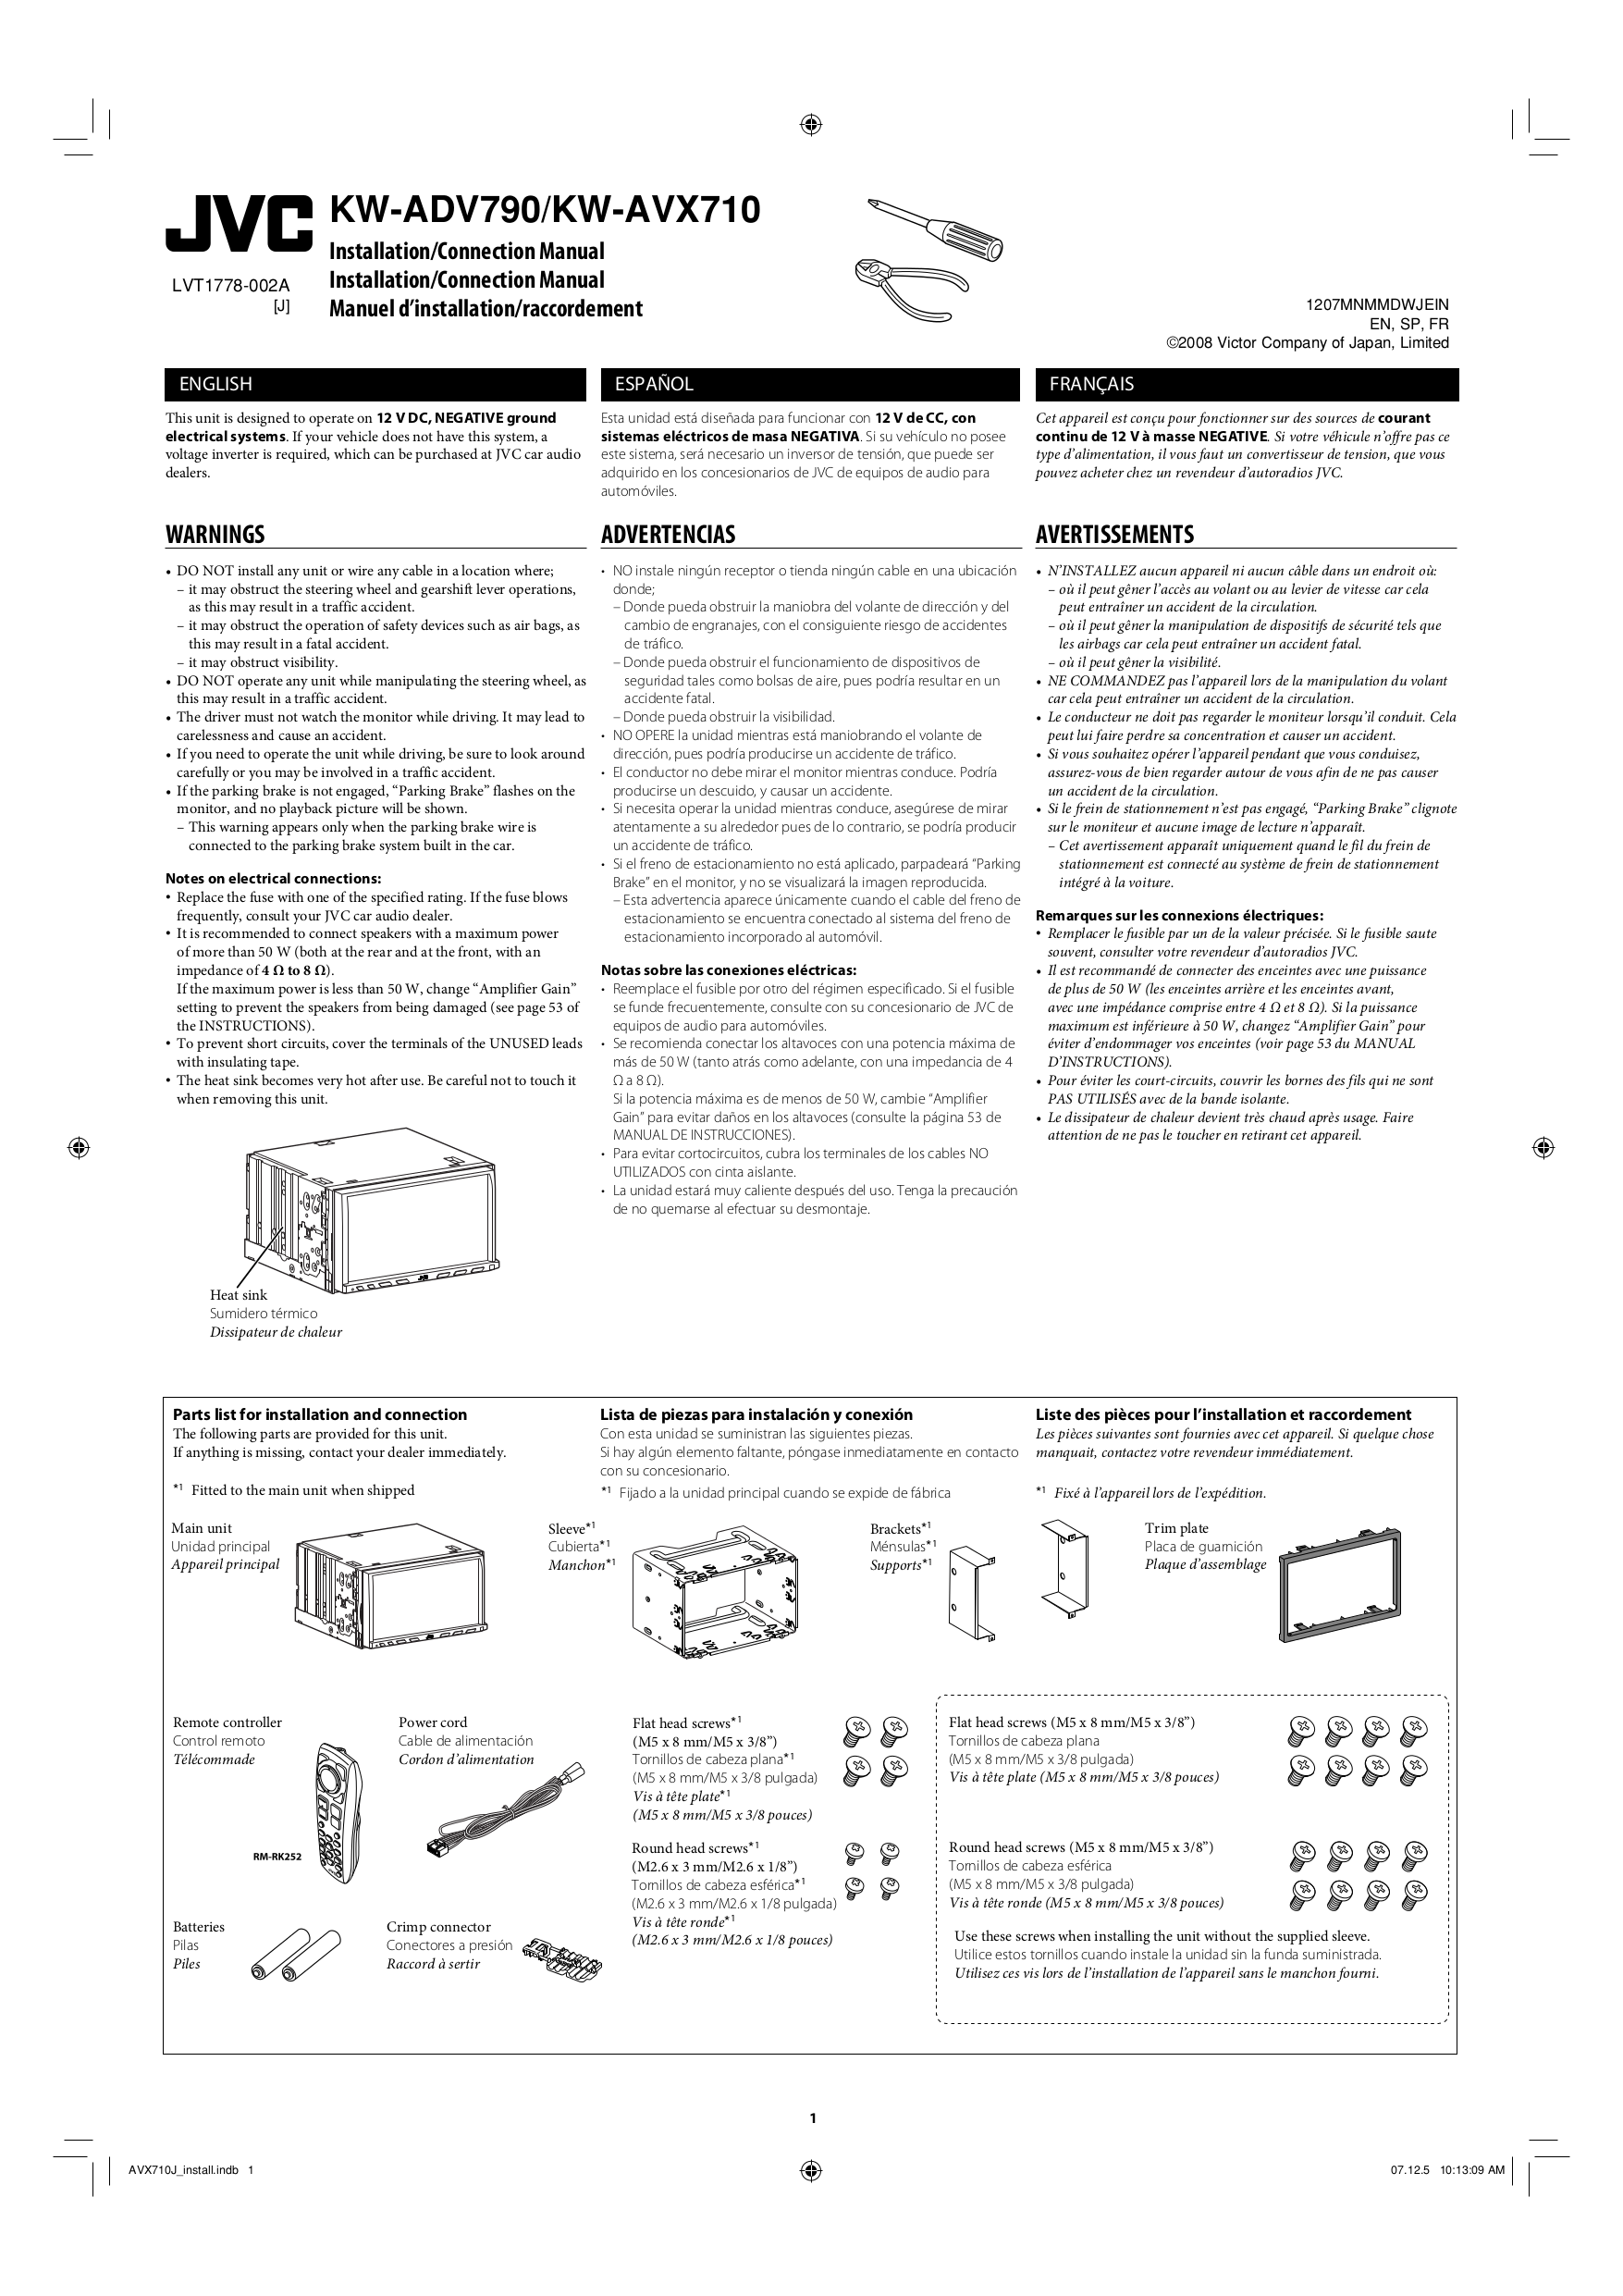 Kw Avx710 Wiring Diagram Library Jvc Car Video Pdf Page Preview